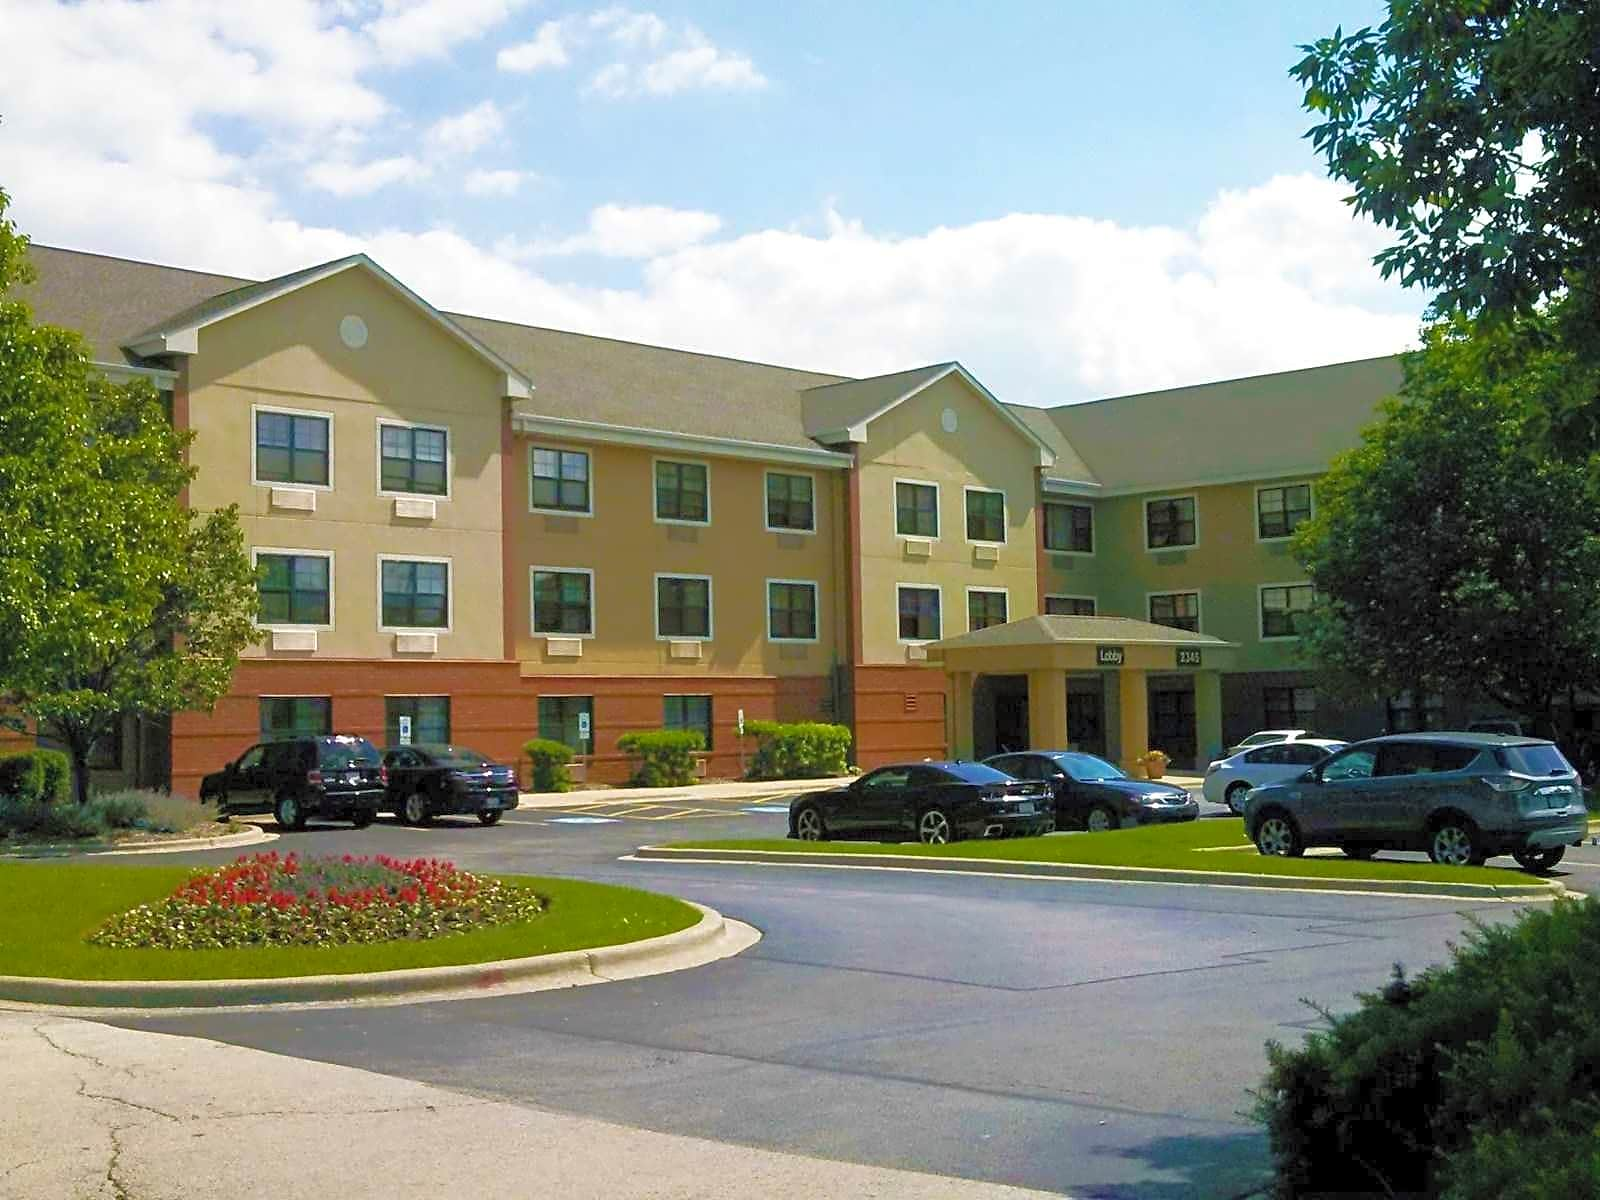 Apartments Near Lewis Furnished Studio - Chicago - Darien for Lewis University Students in Romeoville, IL